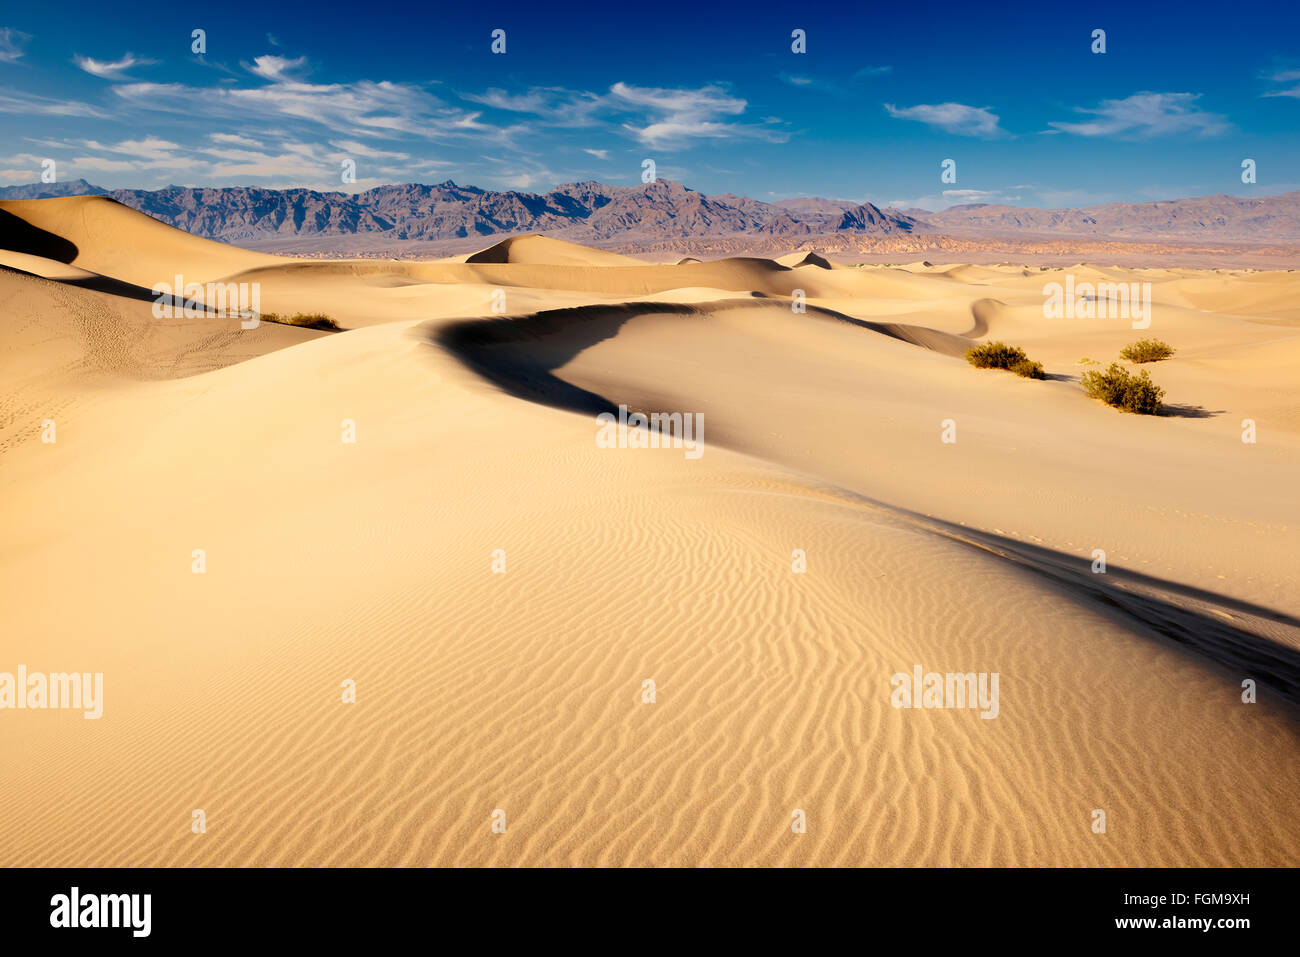 Mesquite Flat Sand Dunes in Death Valley National Park, California - Stock Image